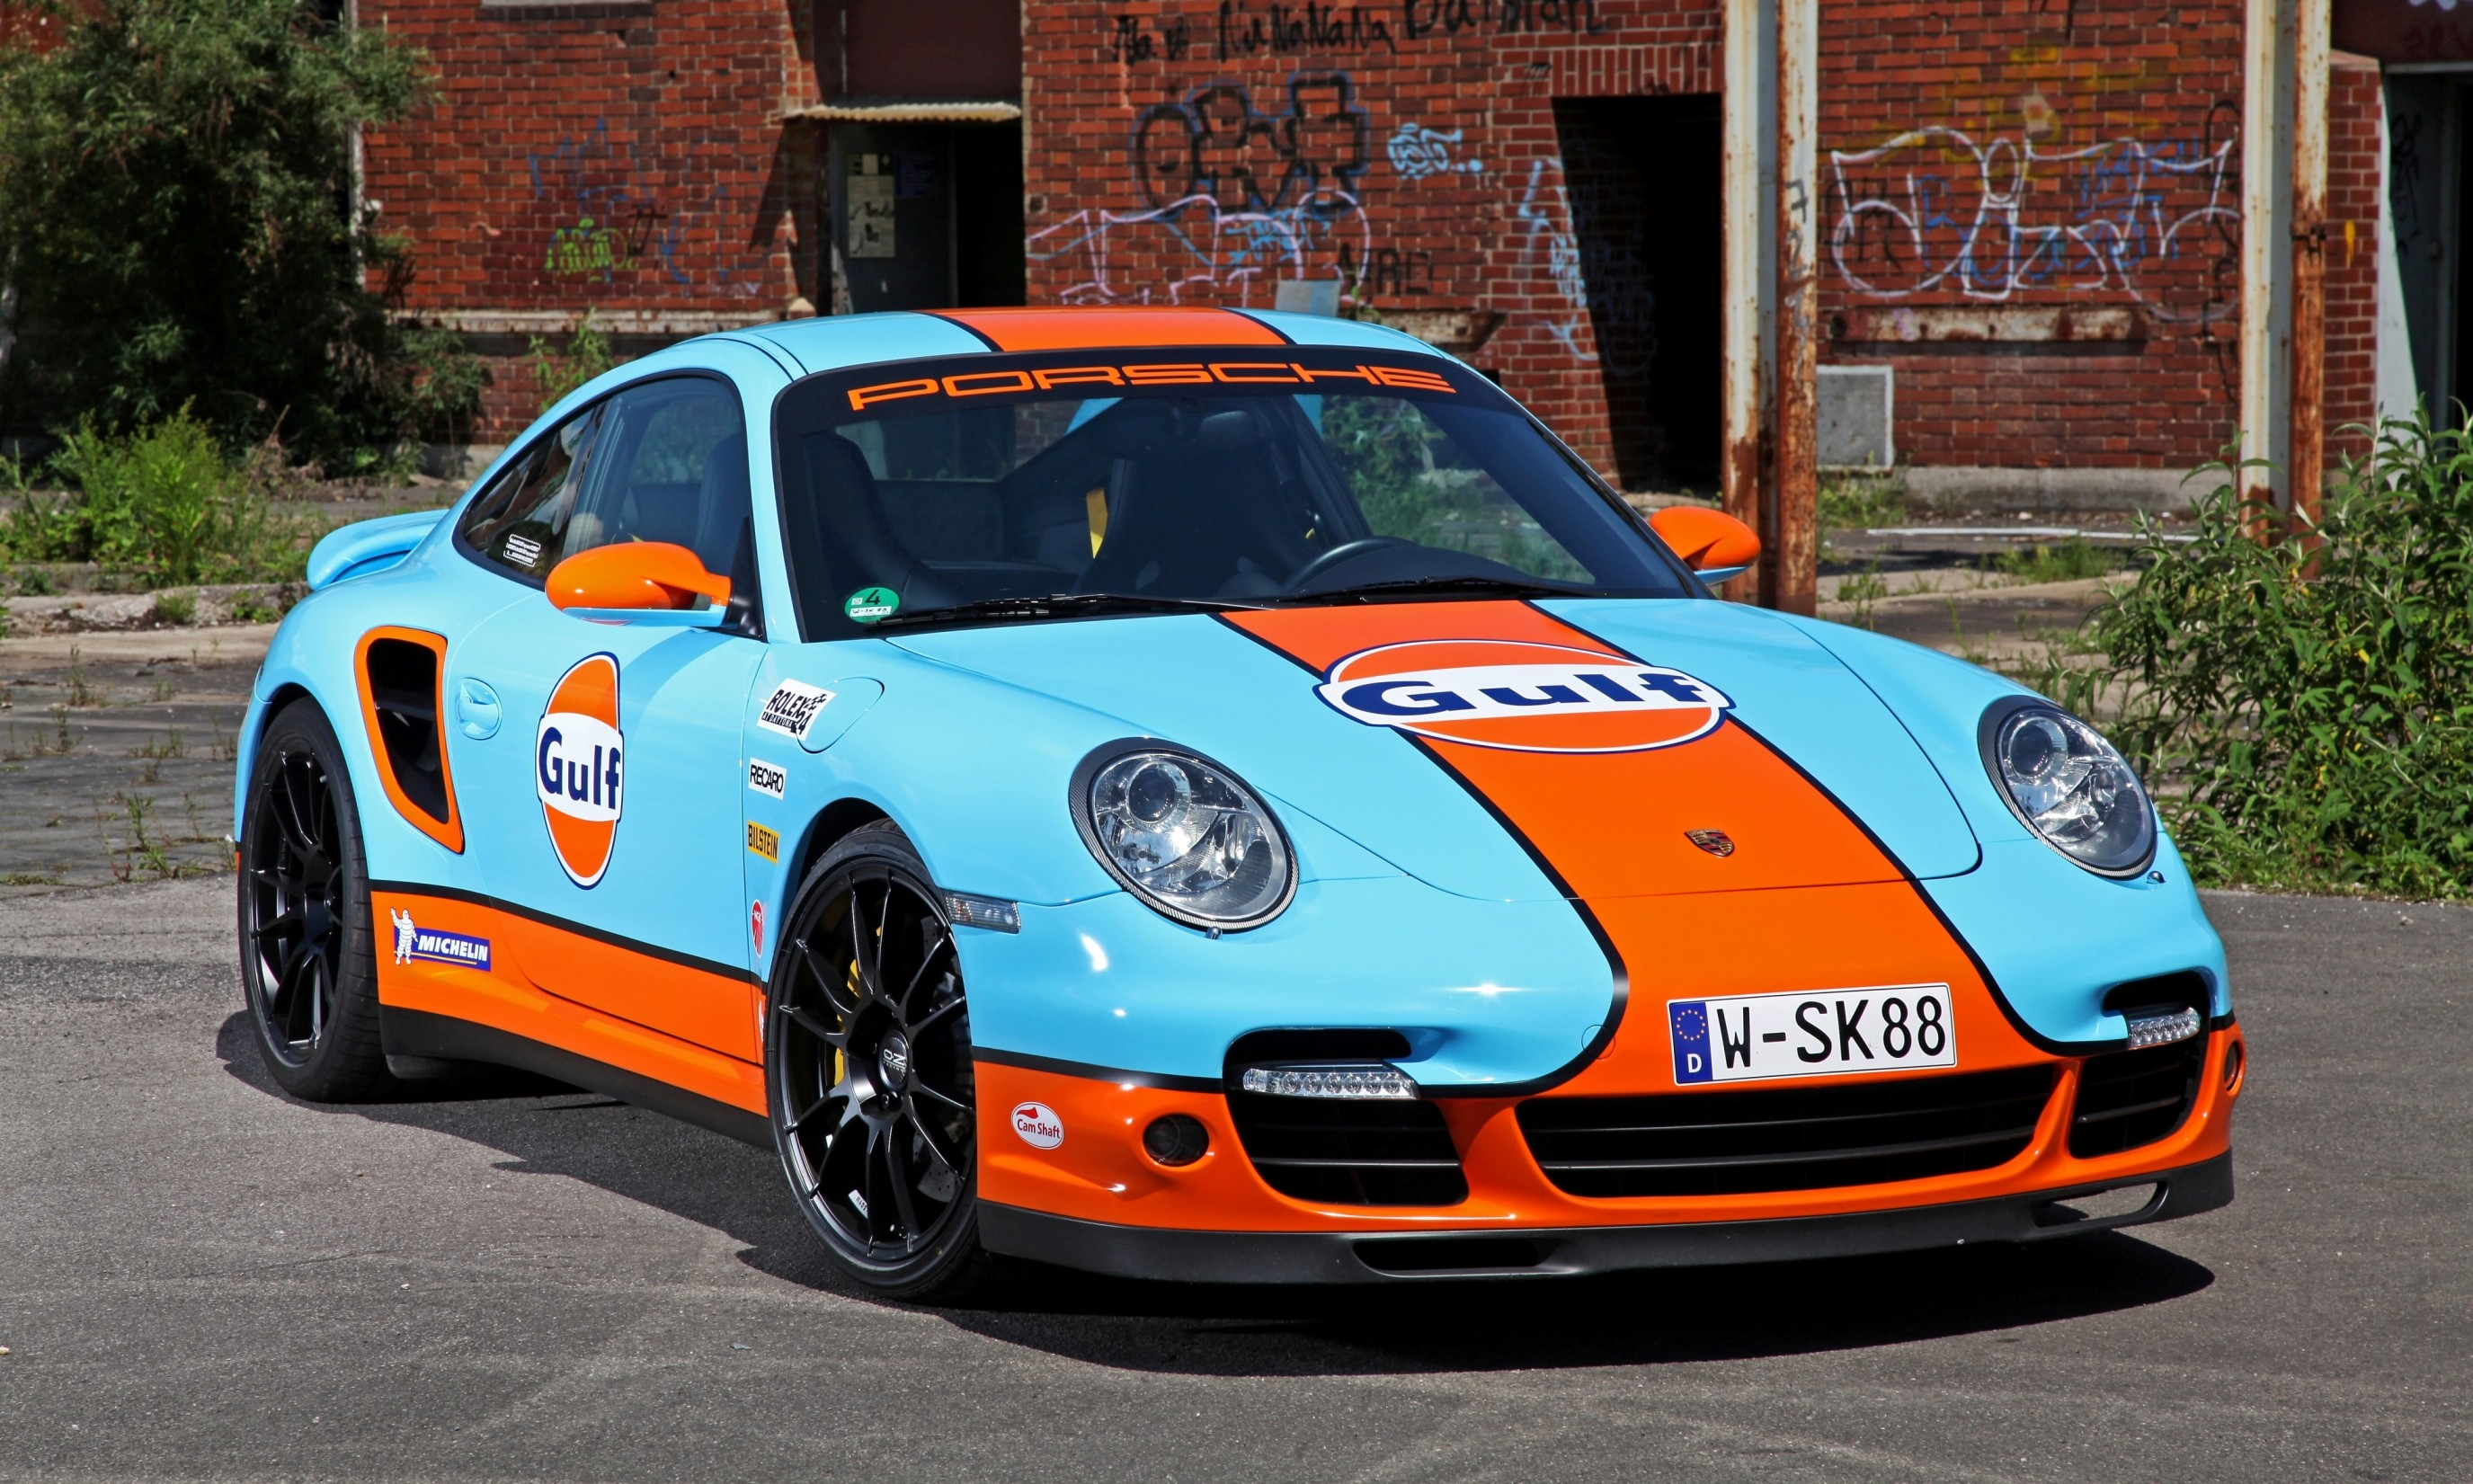 Gulf Racing Livery By Cam Shaft For The Porsche 911 Turbo 14